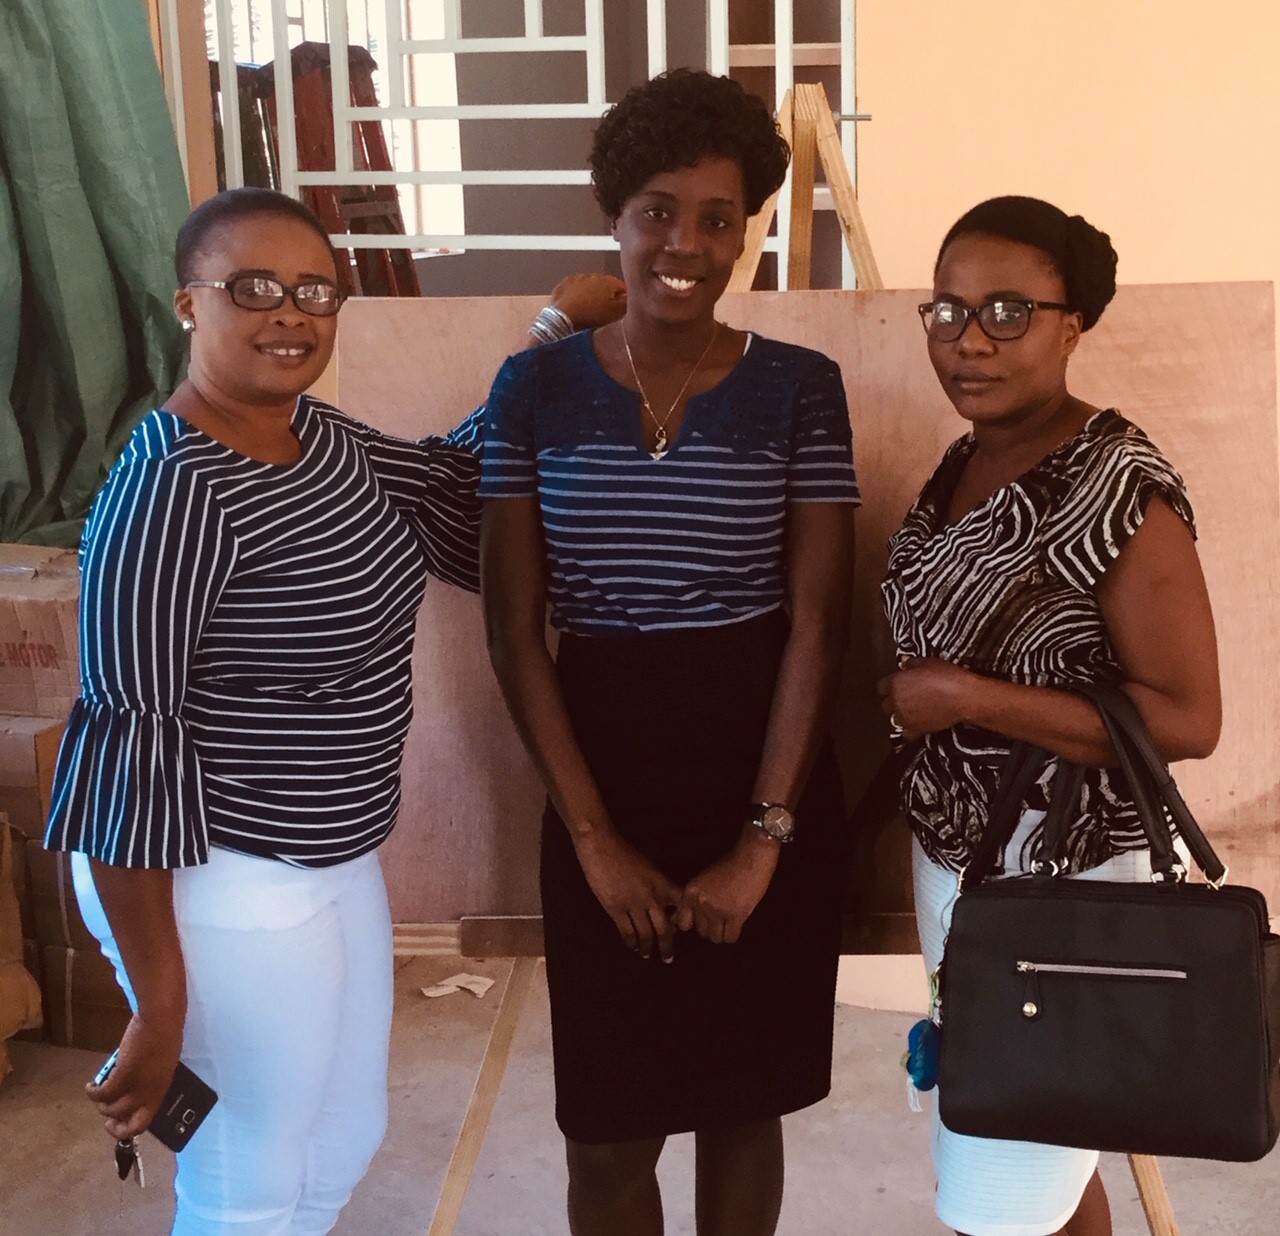 A big thank you from the staff and 24 students at the sewing school in Cap Haitian, Haiti. The pic directly below (left to right) shows .. our Business Director, our Registered Nurse (Clinic), and Sewing Instructor.jpg